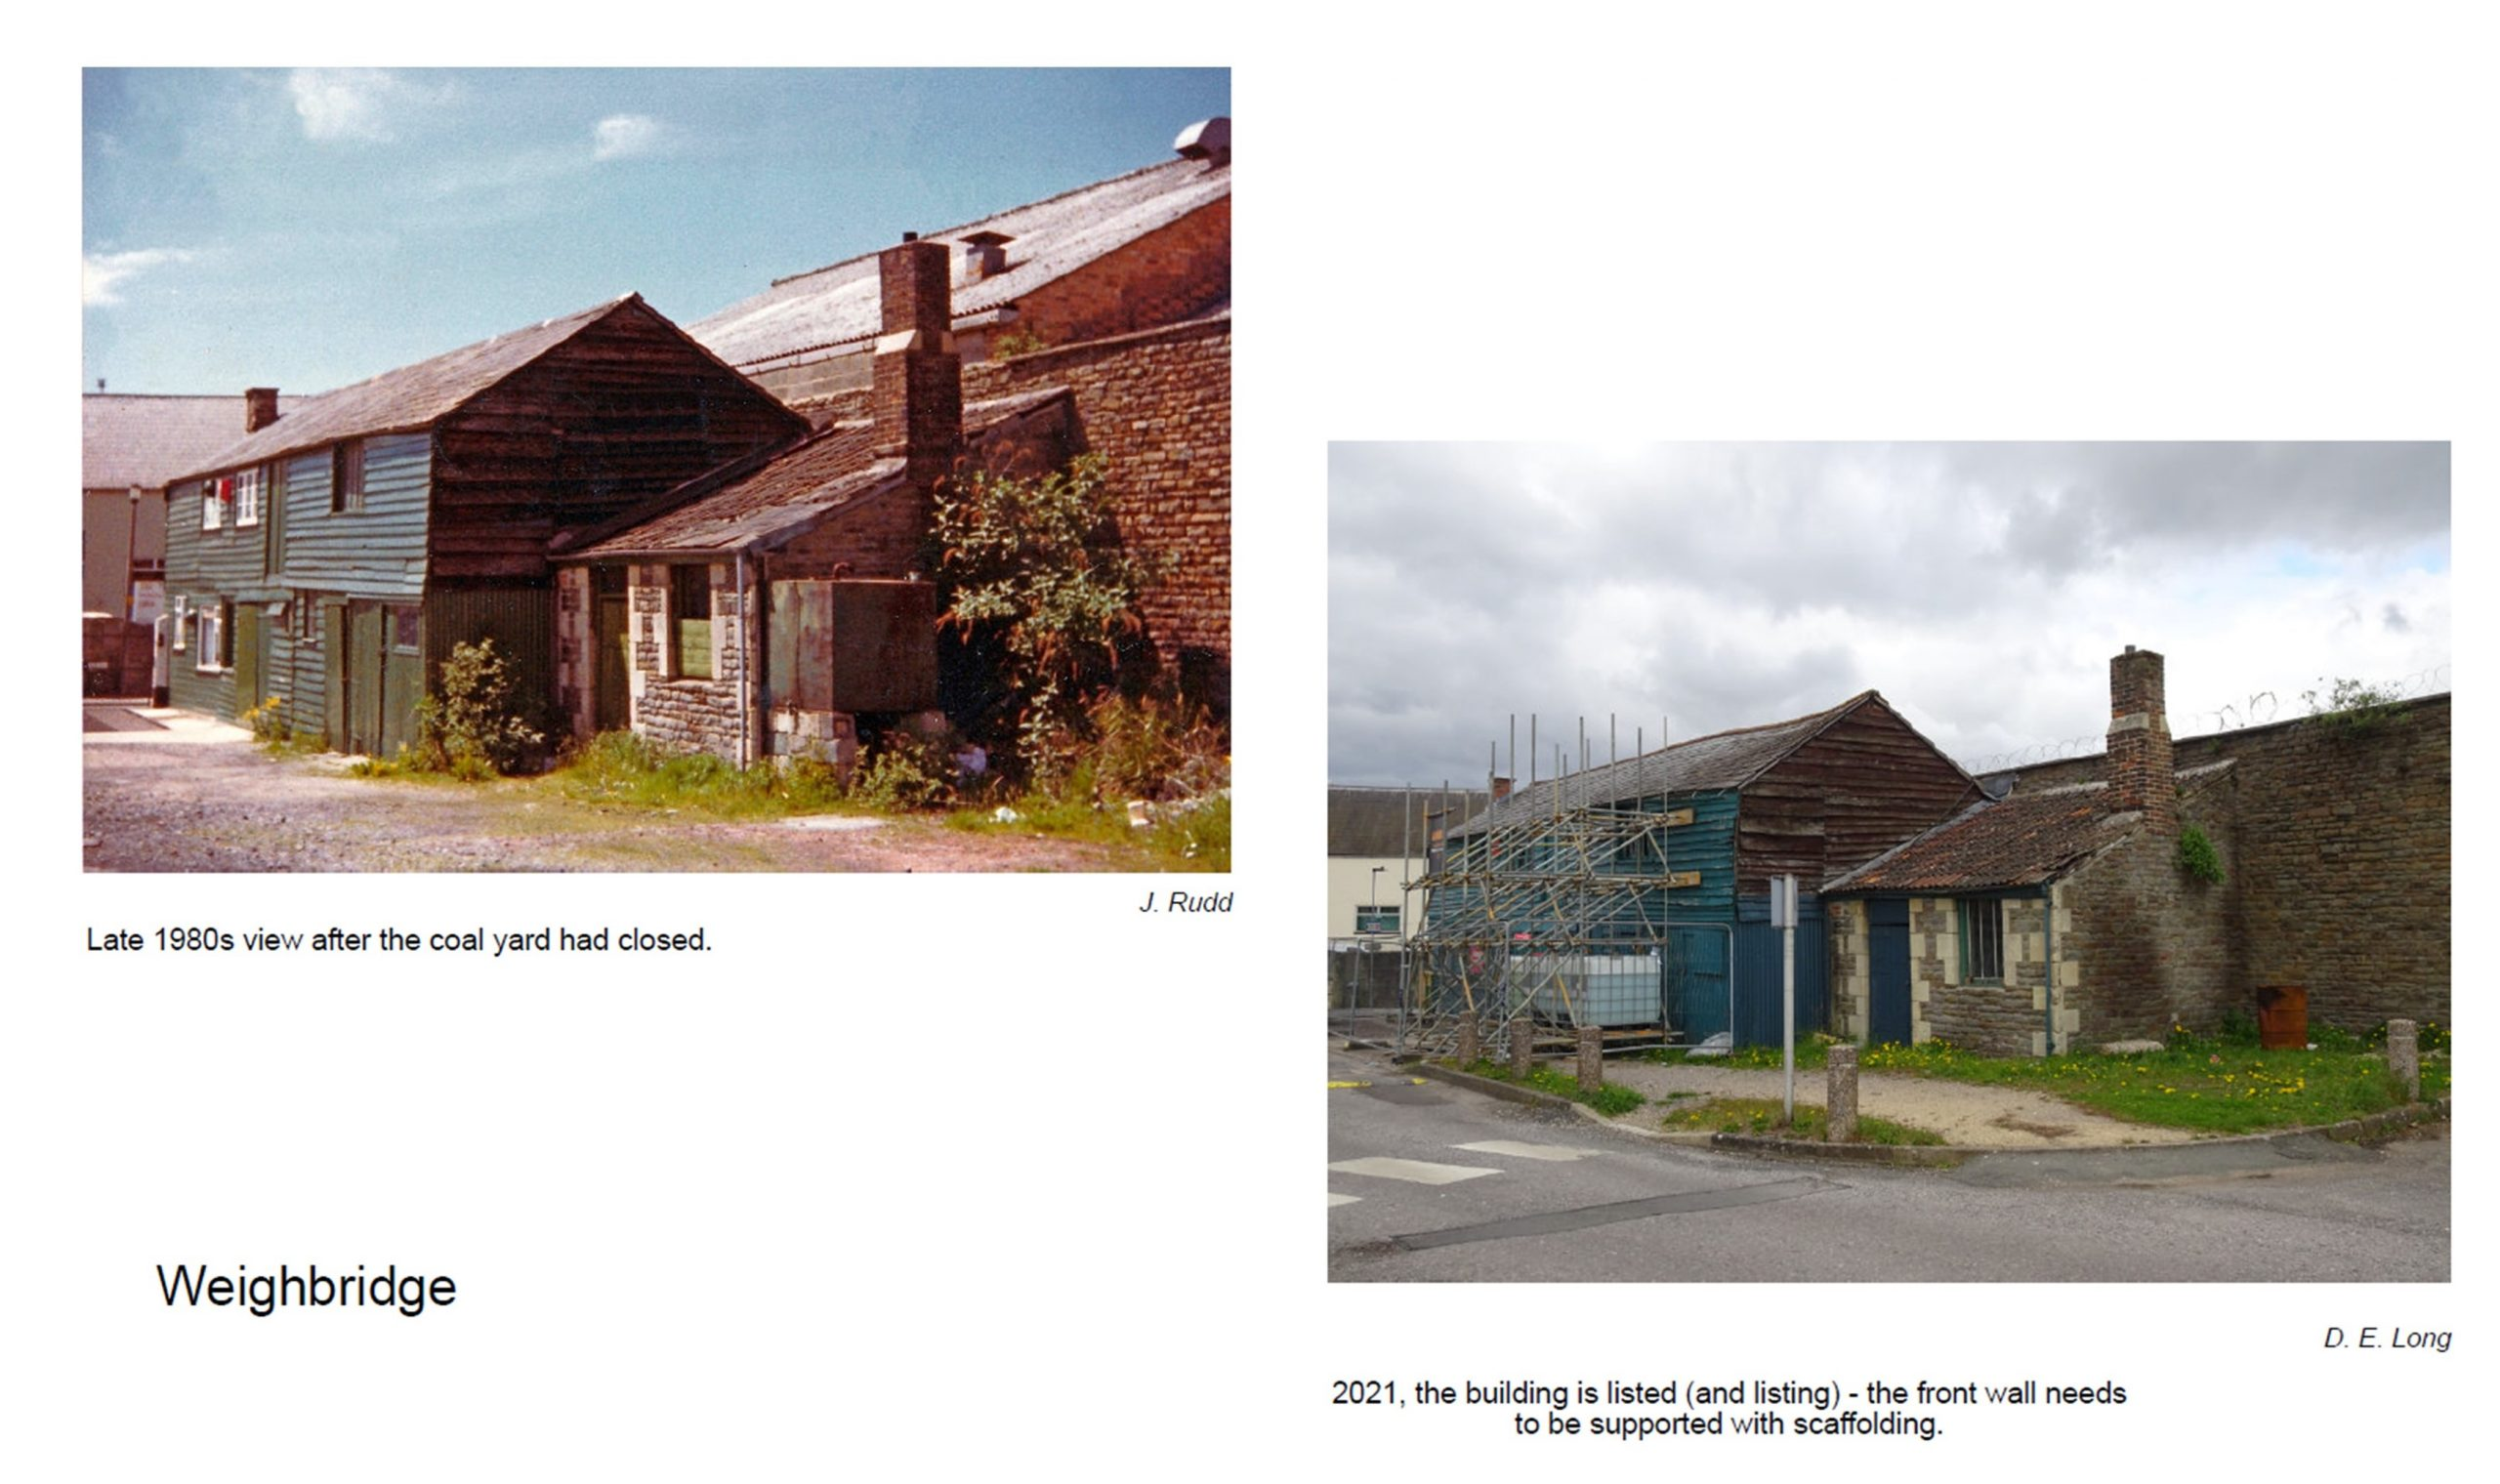 Views of the weighbridge from the 1980s after it closed and today with scaffolding to support the front wall